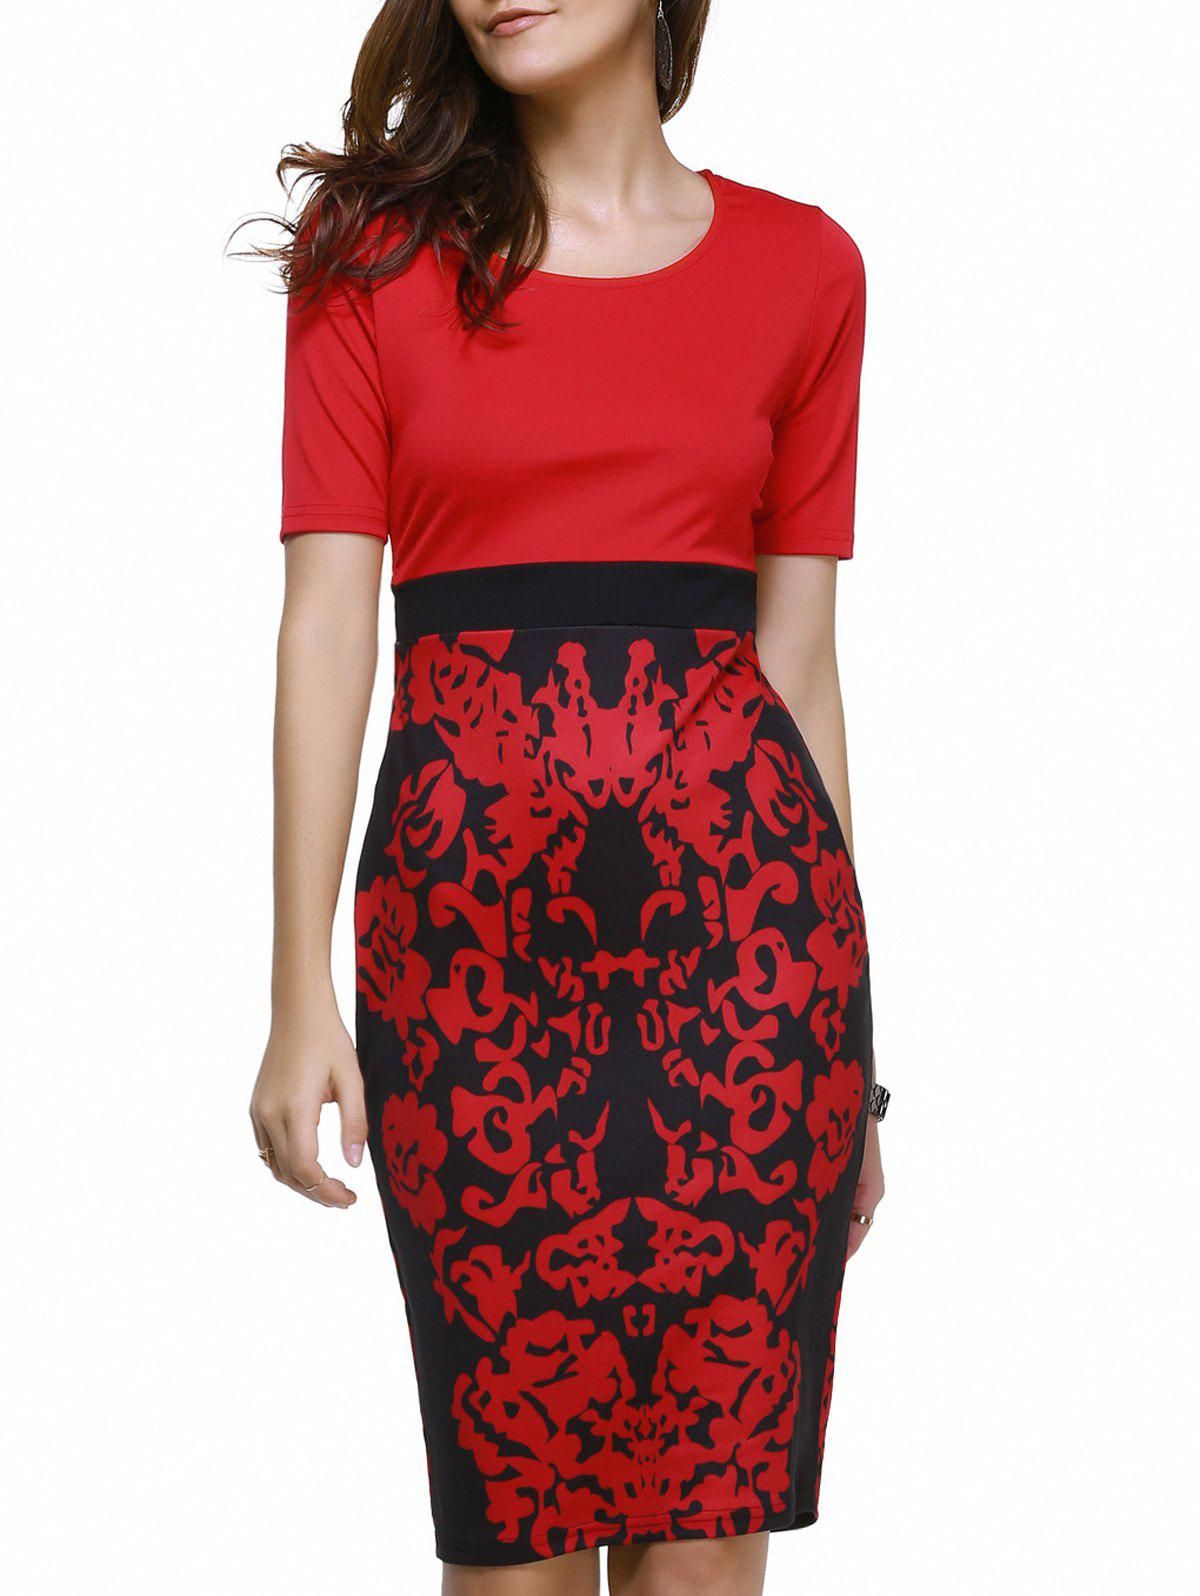 Fashionable Women's Scoop Neck Floral Print Bodycon Dress - RED 2XL